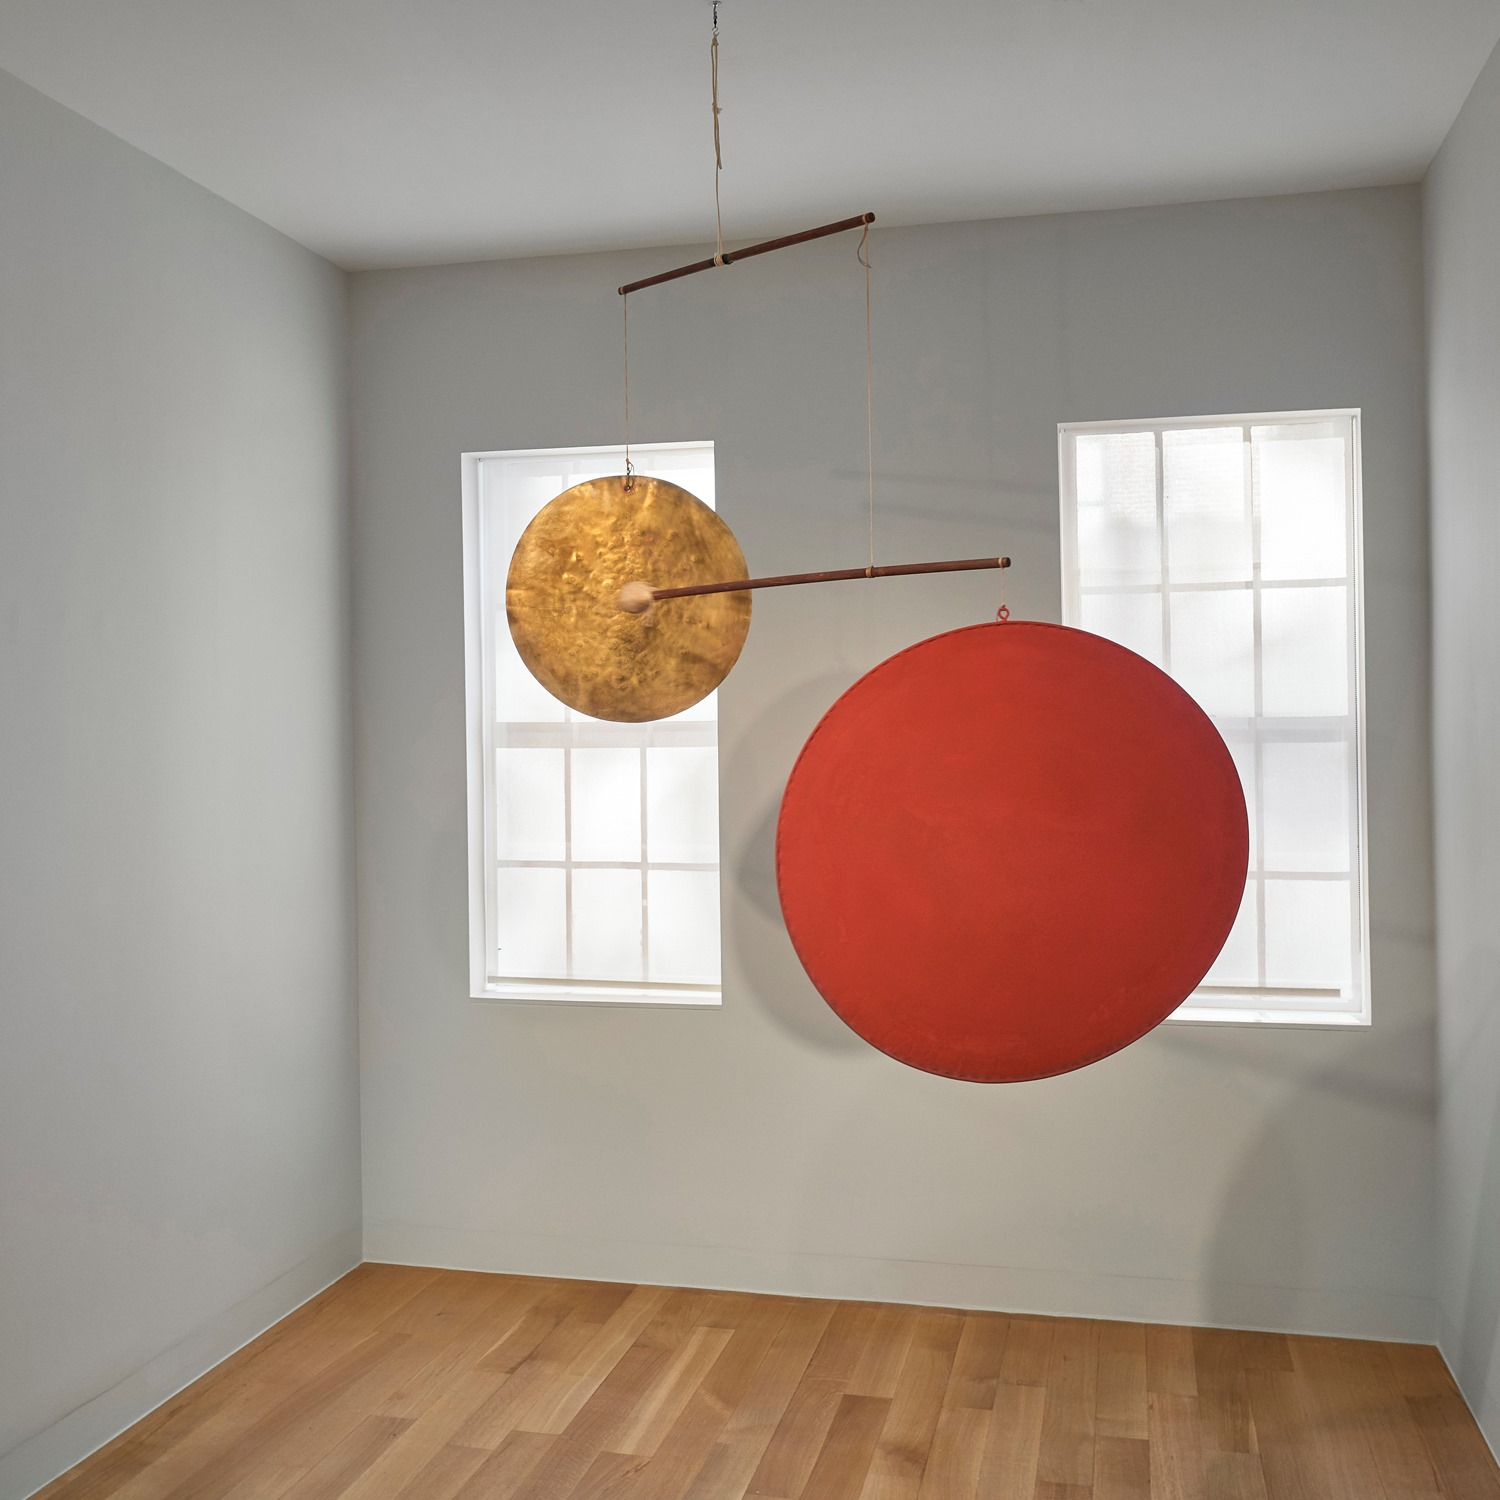 Red Disc and Gong, 1940, Sounds Lasting and Leaving, Luxembourg & Dayan, New York. © 2020 Calder Foundation, New York / Artist Rights Society (ARS), New York